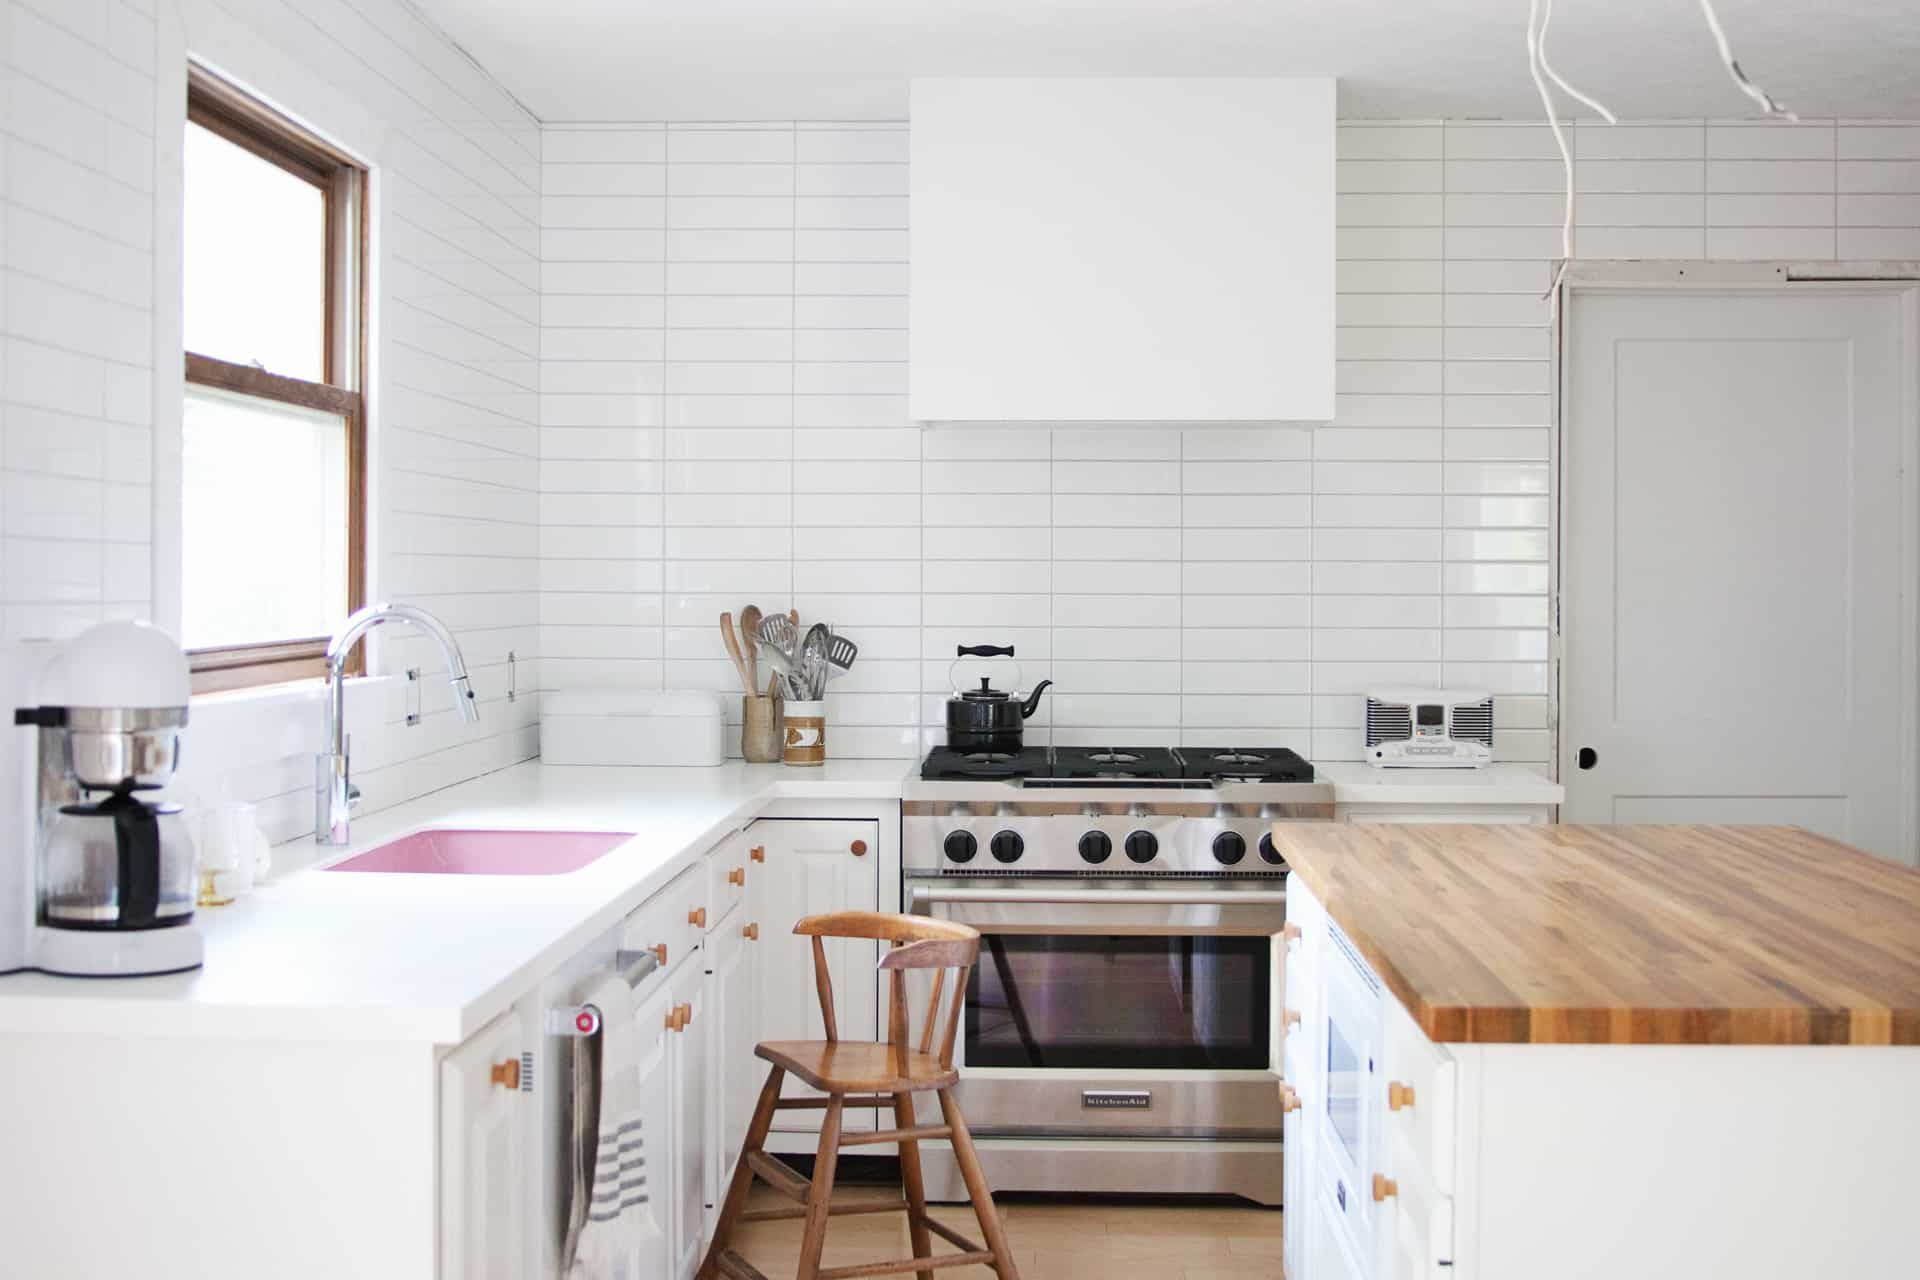 Painting Cabinets With Chalk Paint Pros Cons A Beautiful Mess Painting Kitchen Cabinets Chalk Paint Kitchen Cabinets Chalk Paint Kitchen